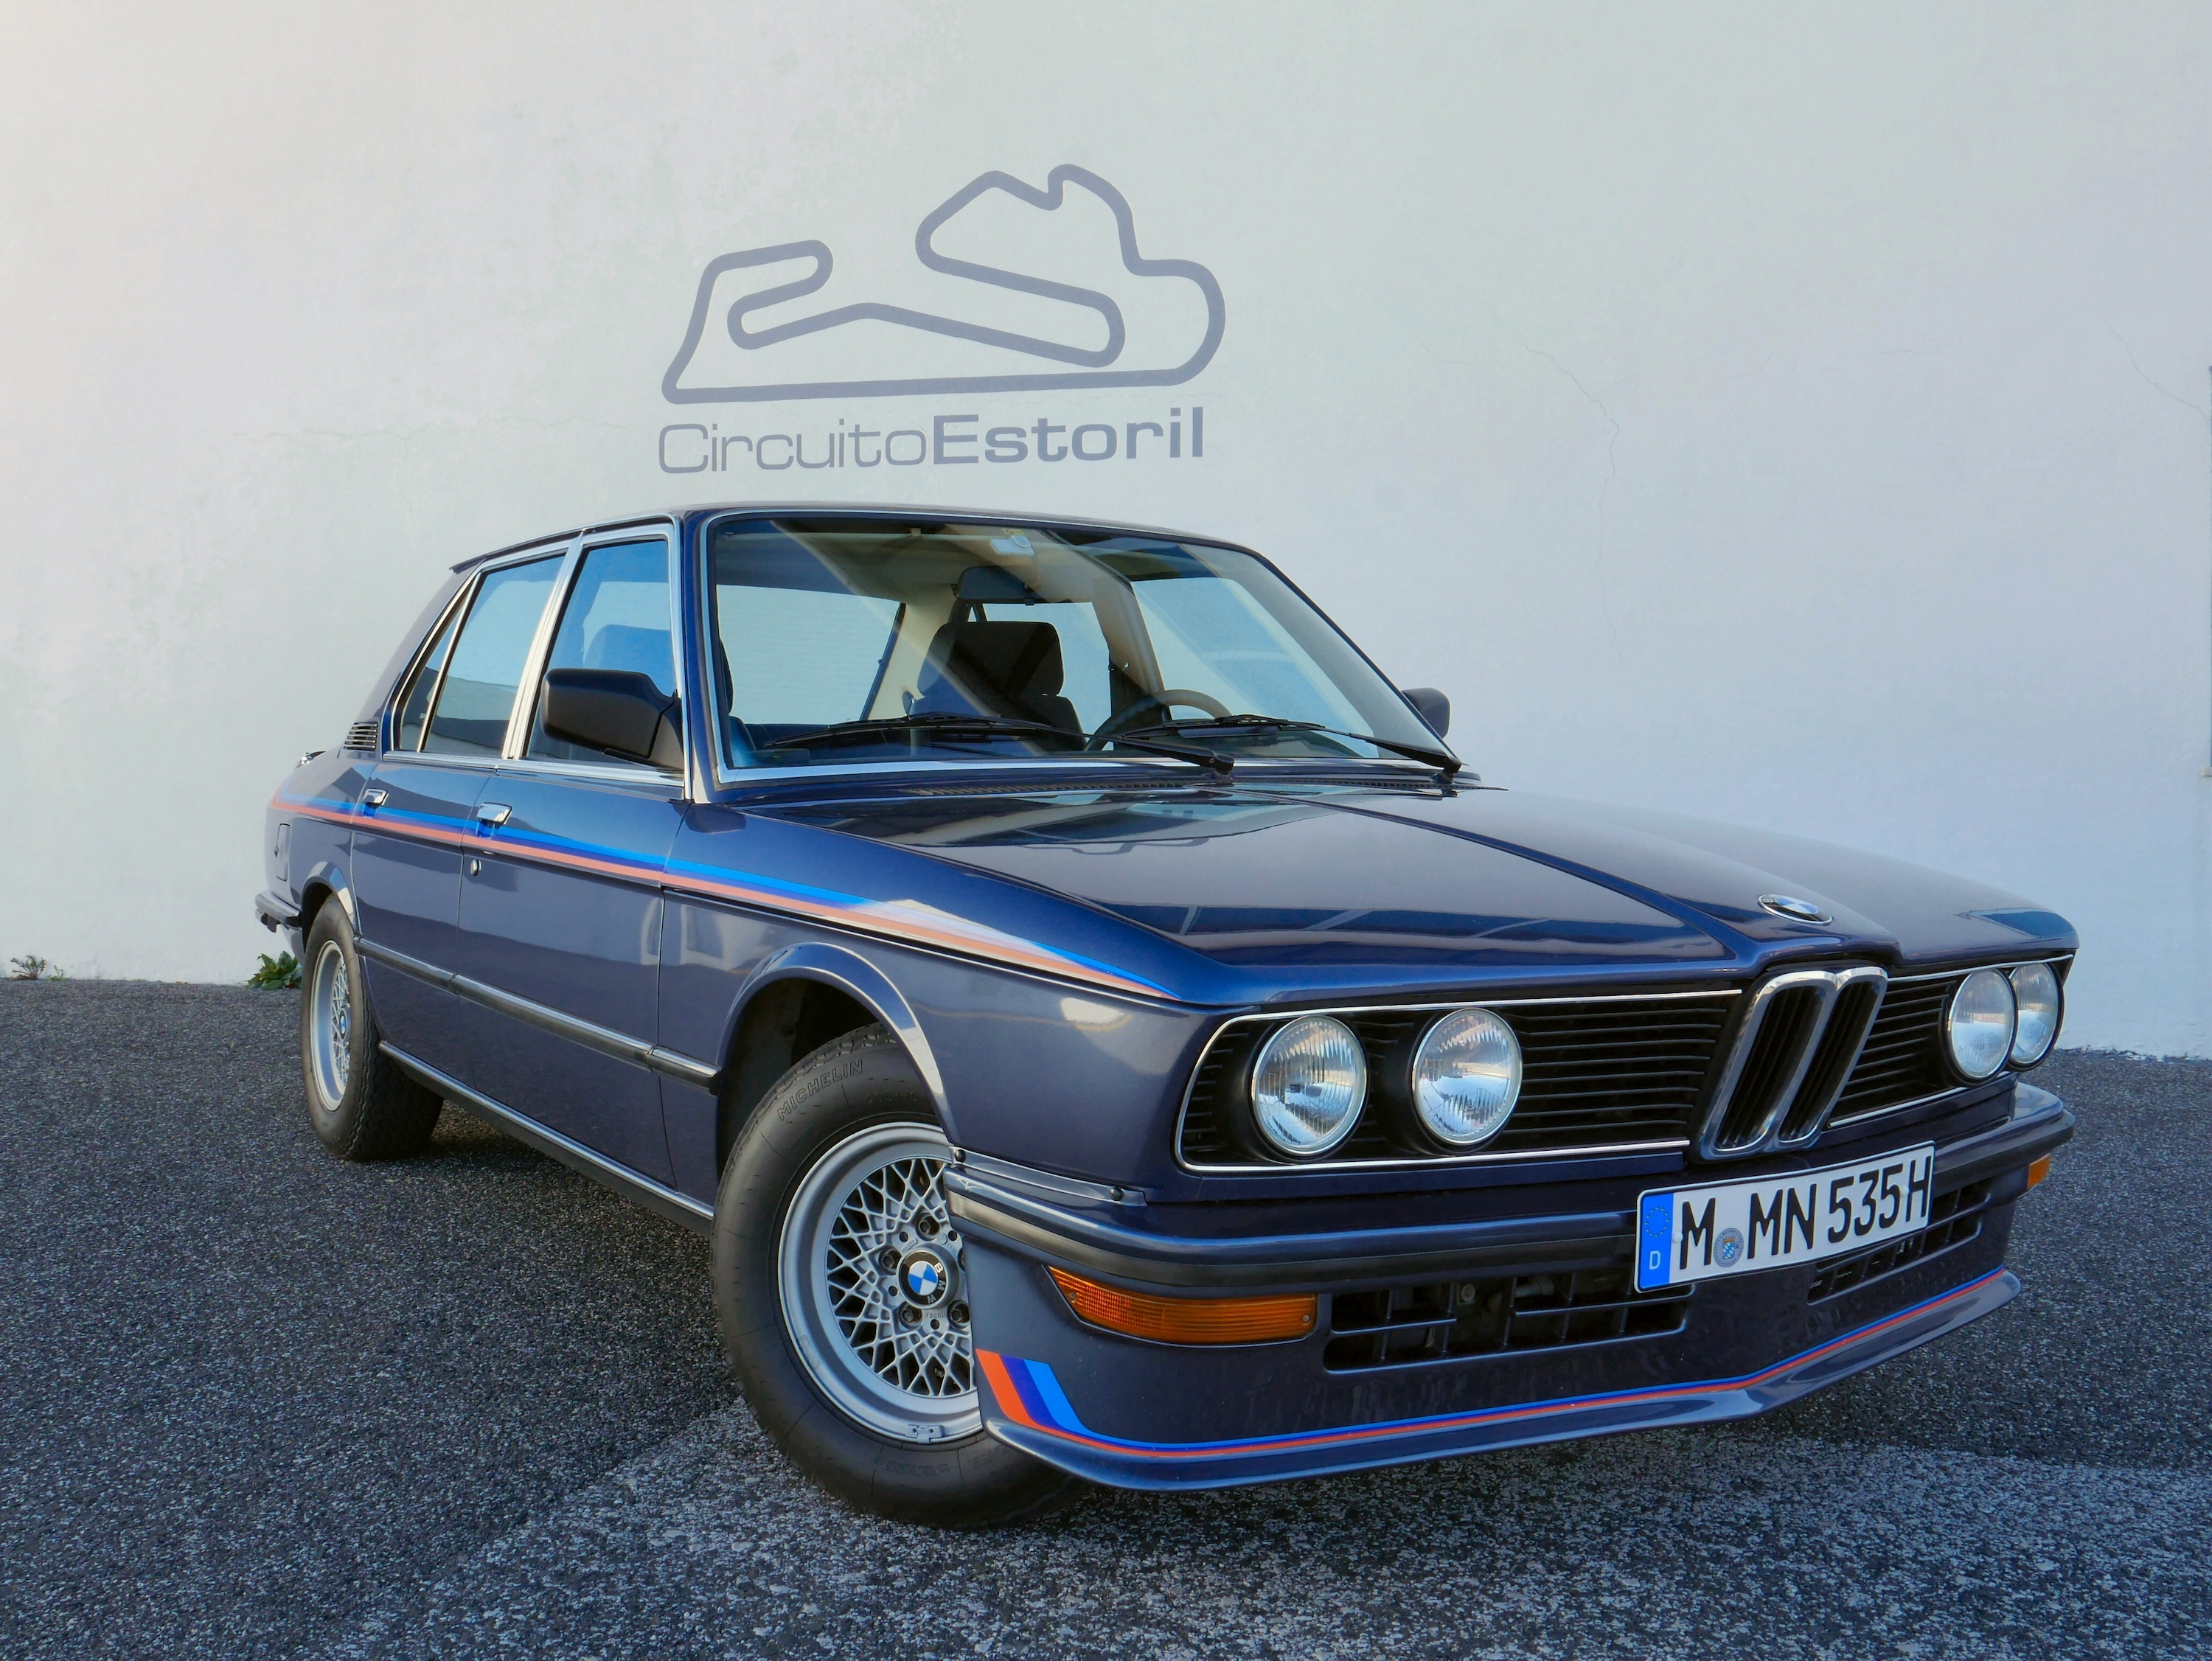 M5 Inception We Drive Each Generation Of Bmw Back To 5 Series E12 M5s Together M535i 01